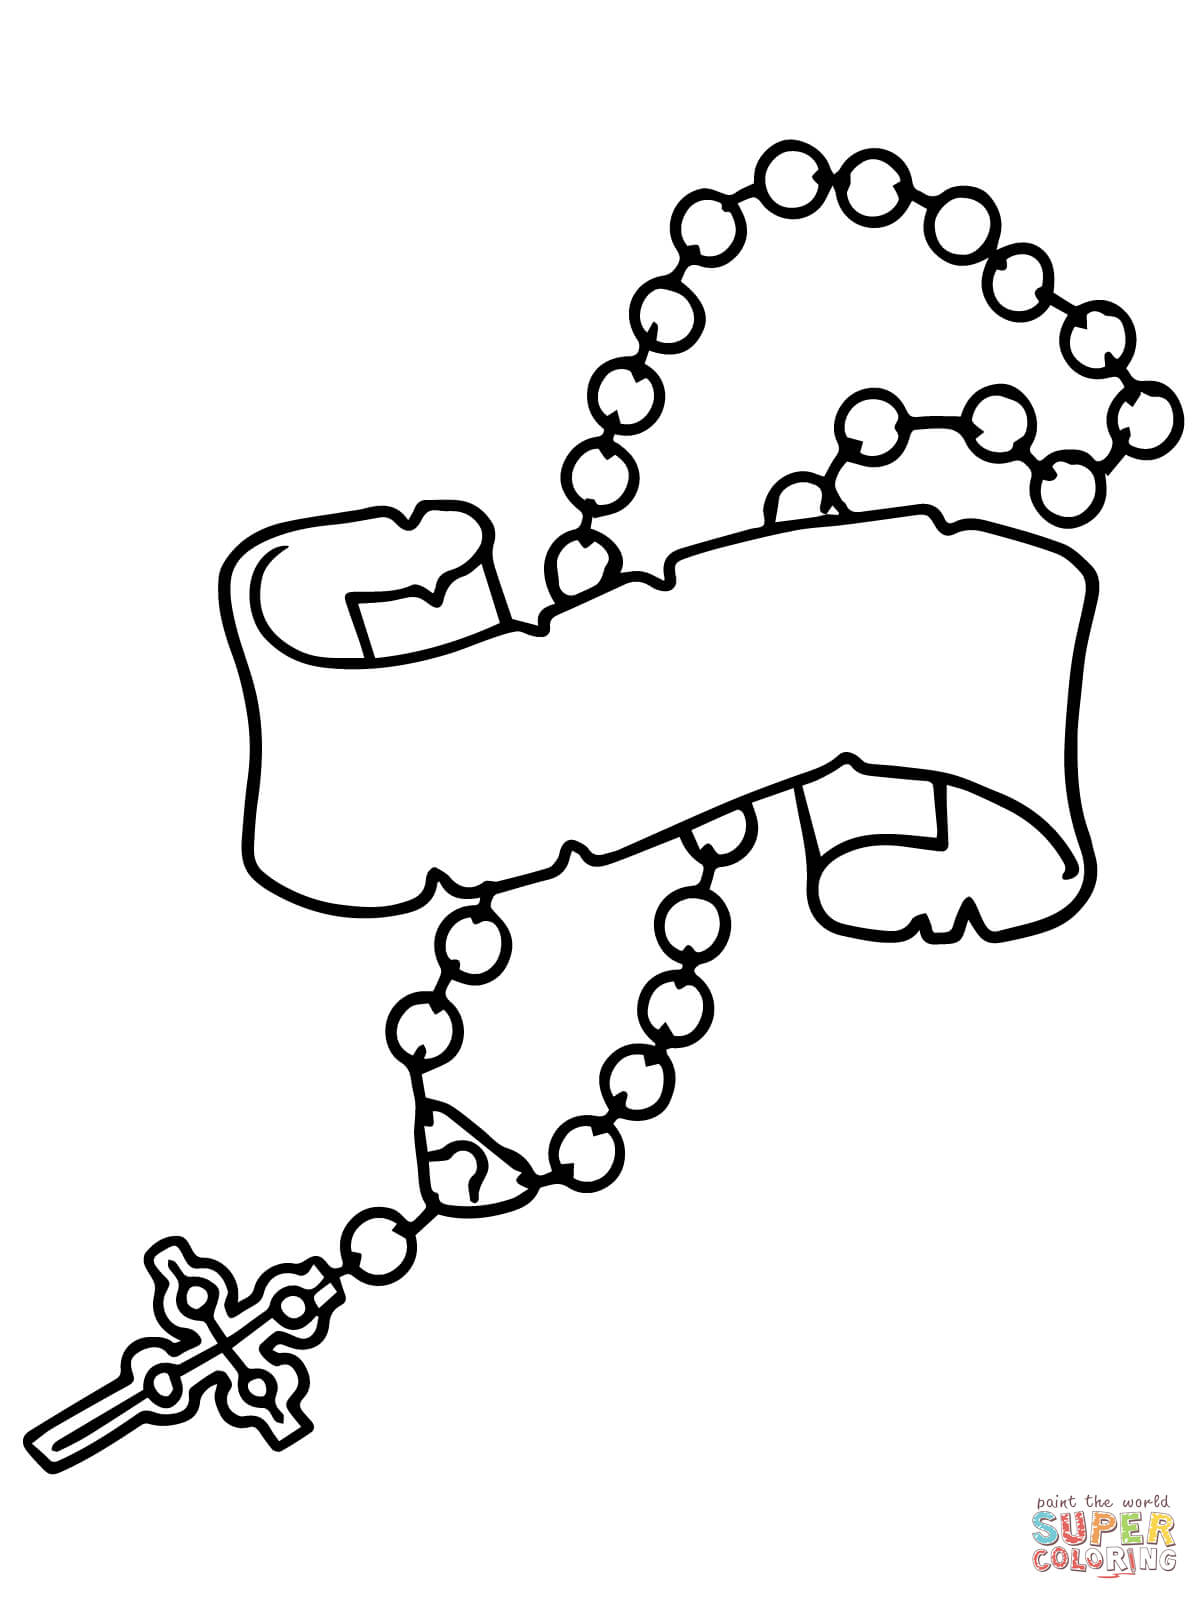 Rosary Coloring Page Rosary Beads Coloring Page Free Printable Coloring Pages